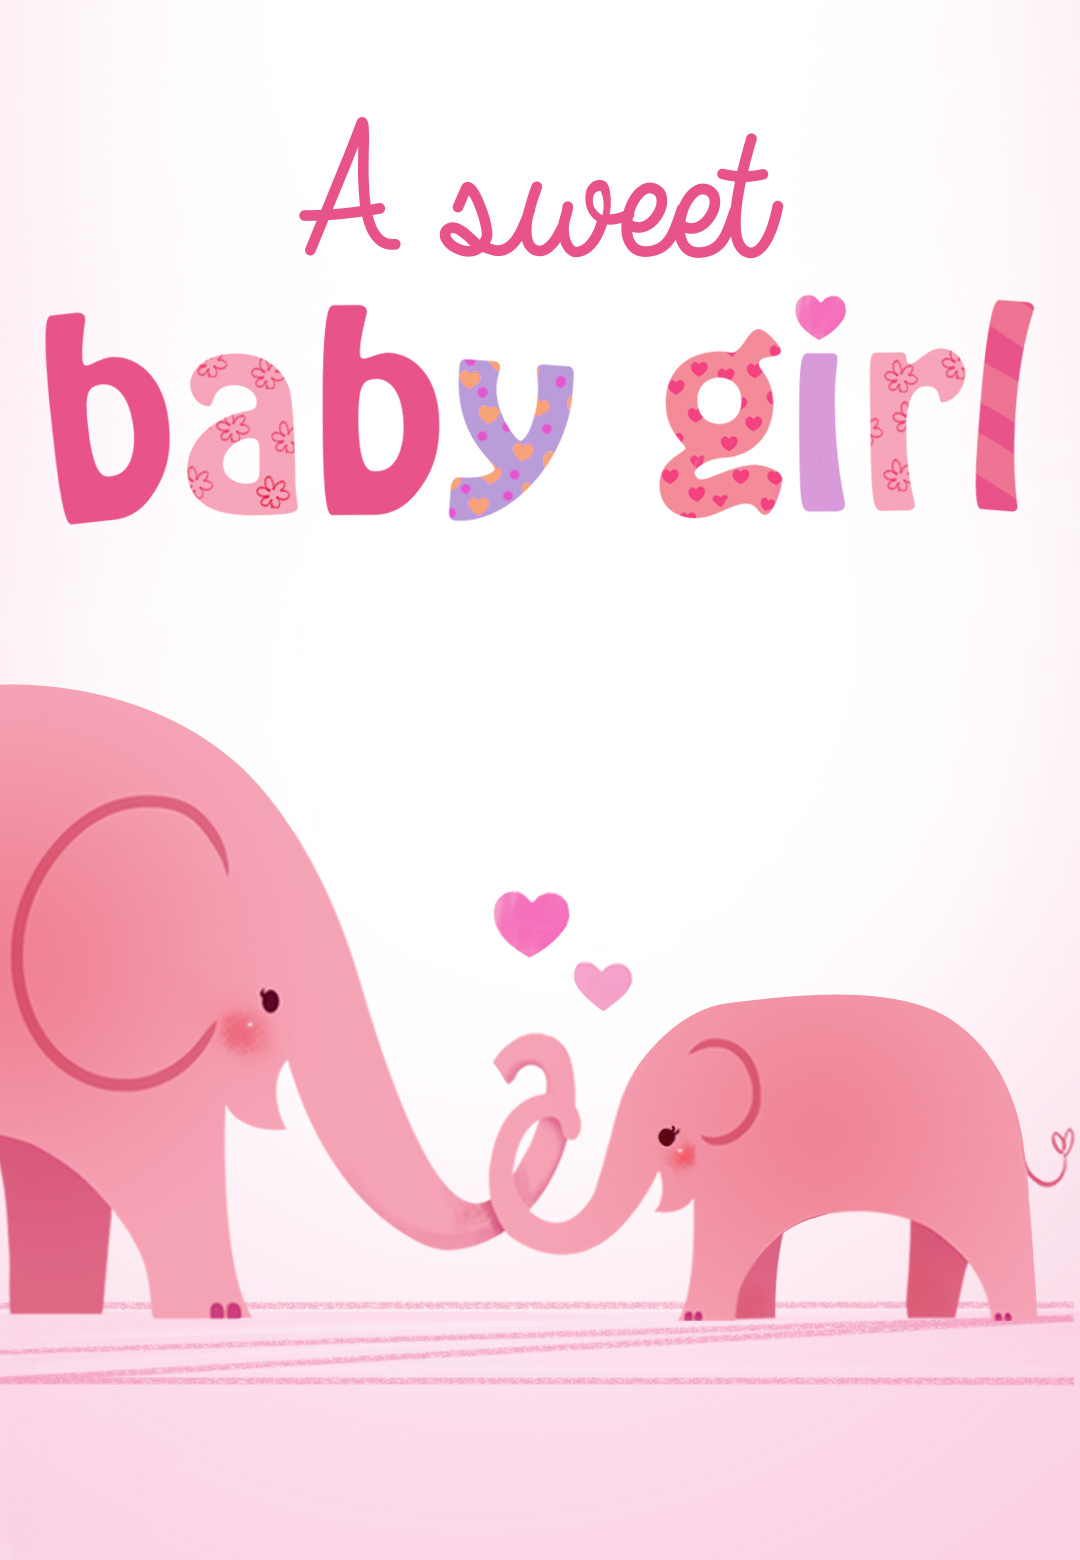 Forever In Your Heart - Free Baby Shower & New Baby Card | Greetings - Free Printable Welcome Cards